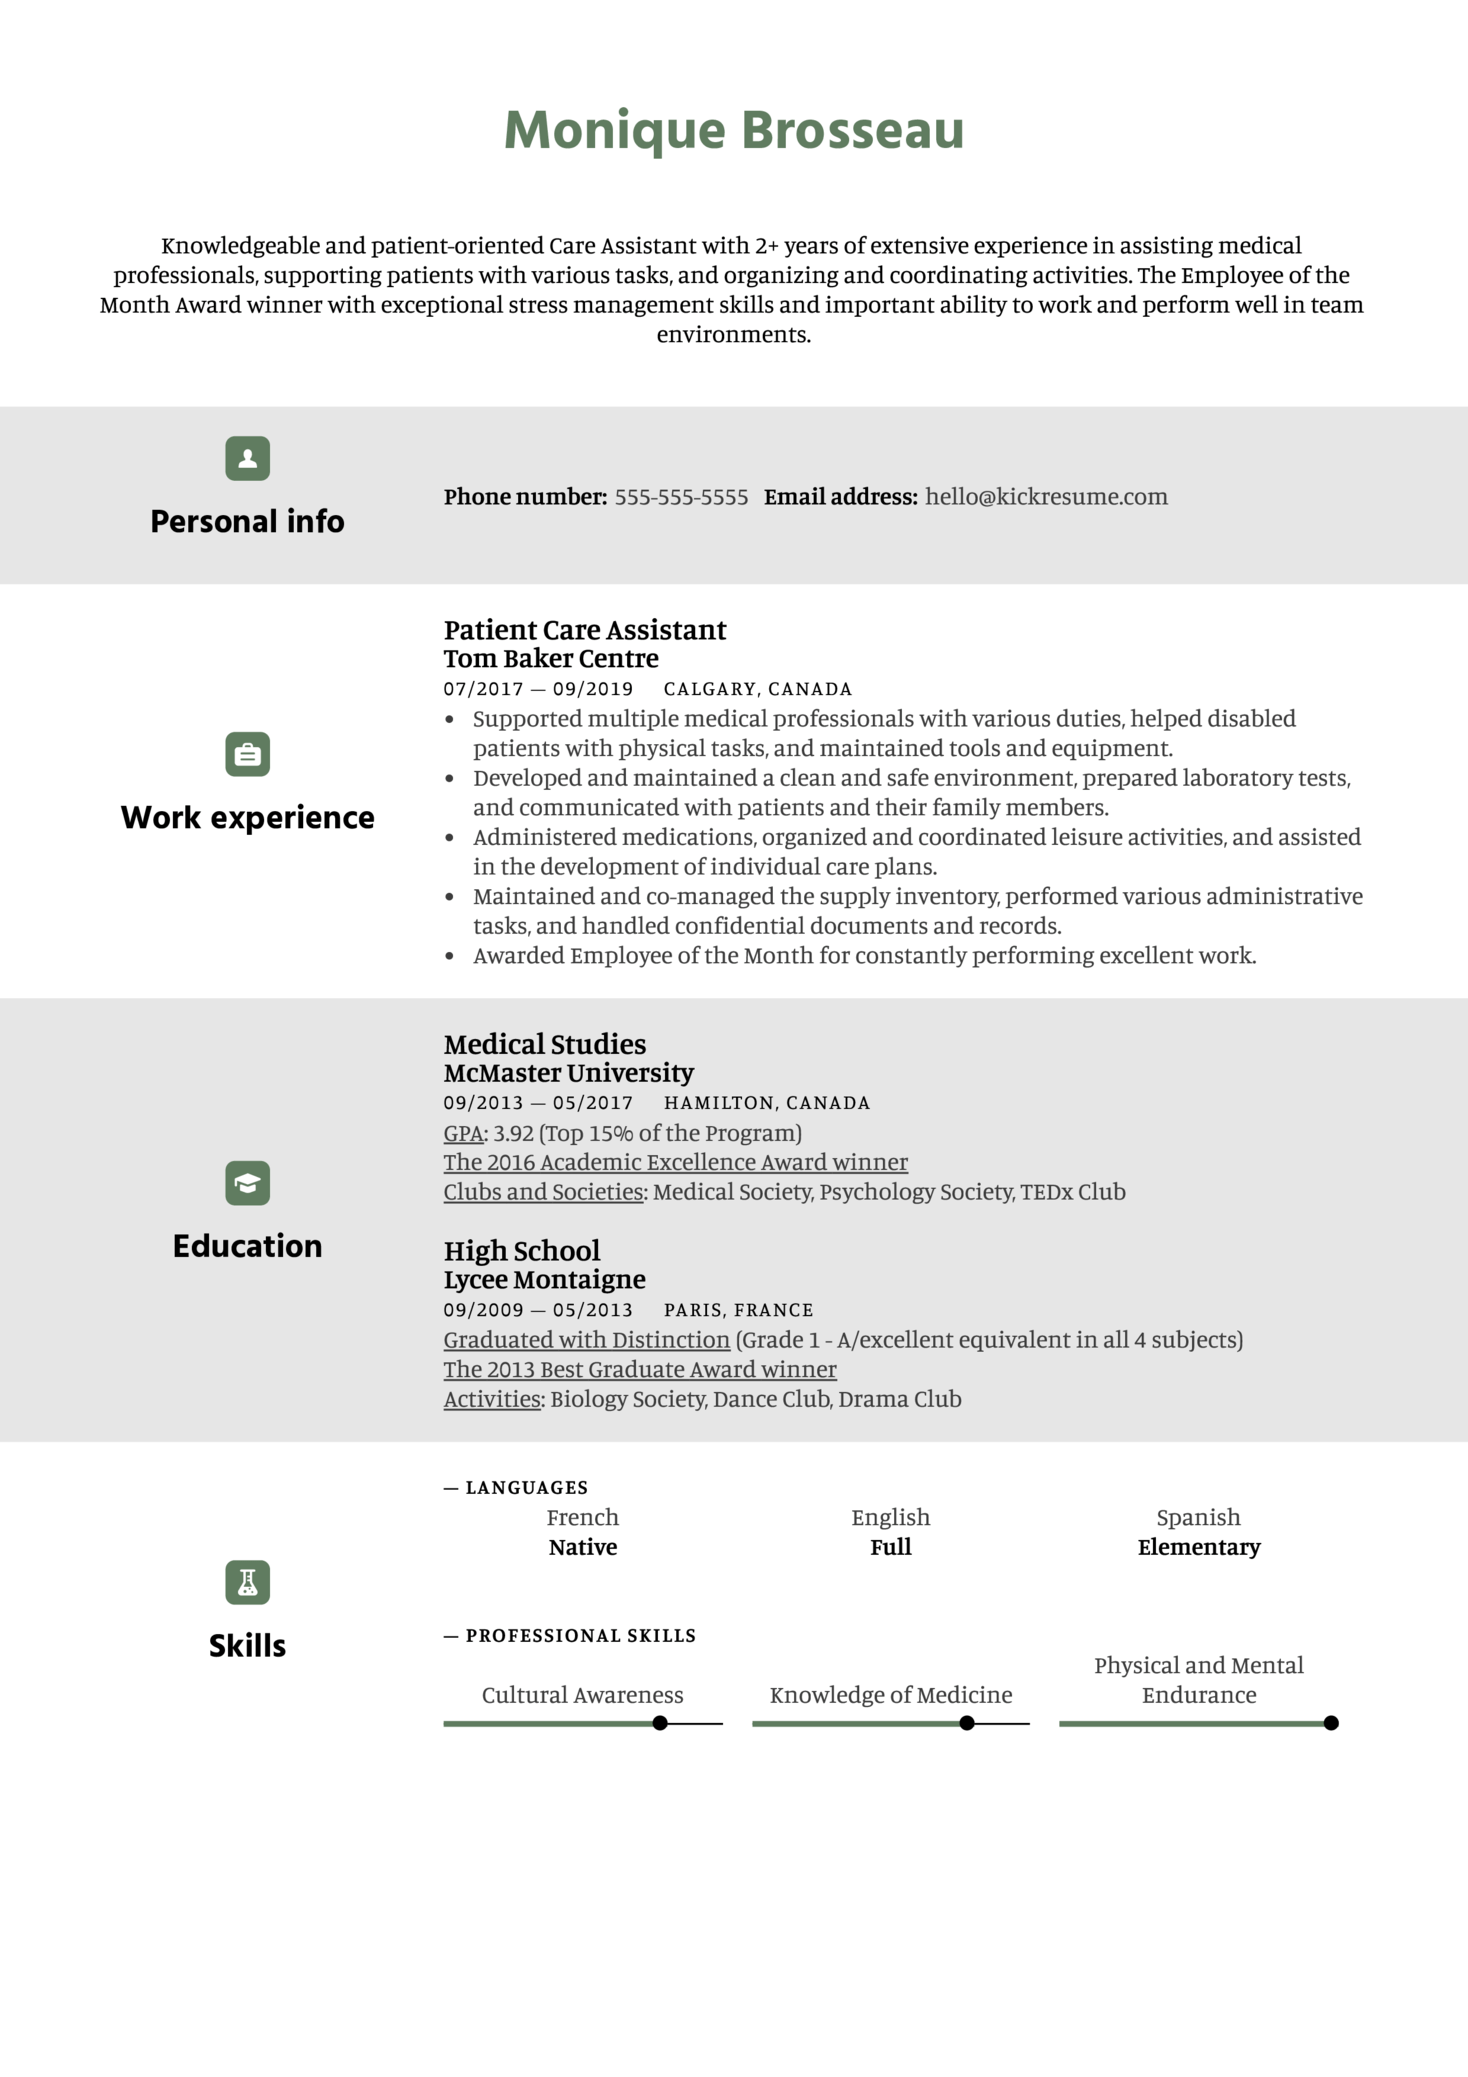 Care Assistant Resume Sample (parte 1)